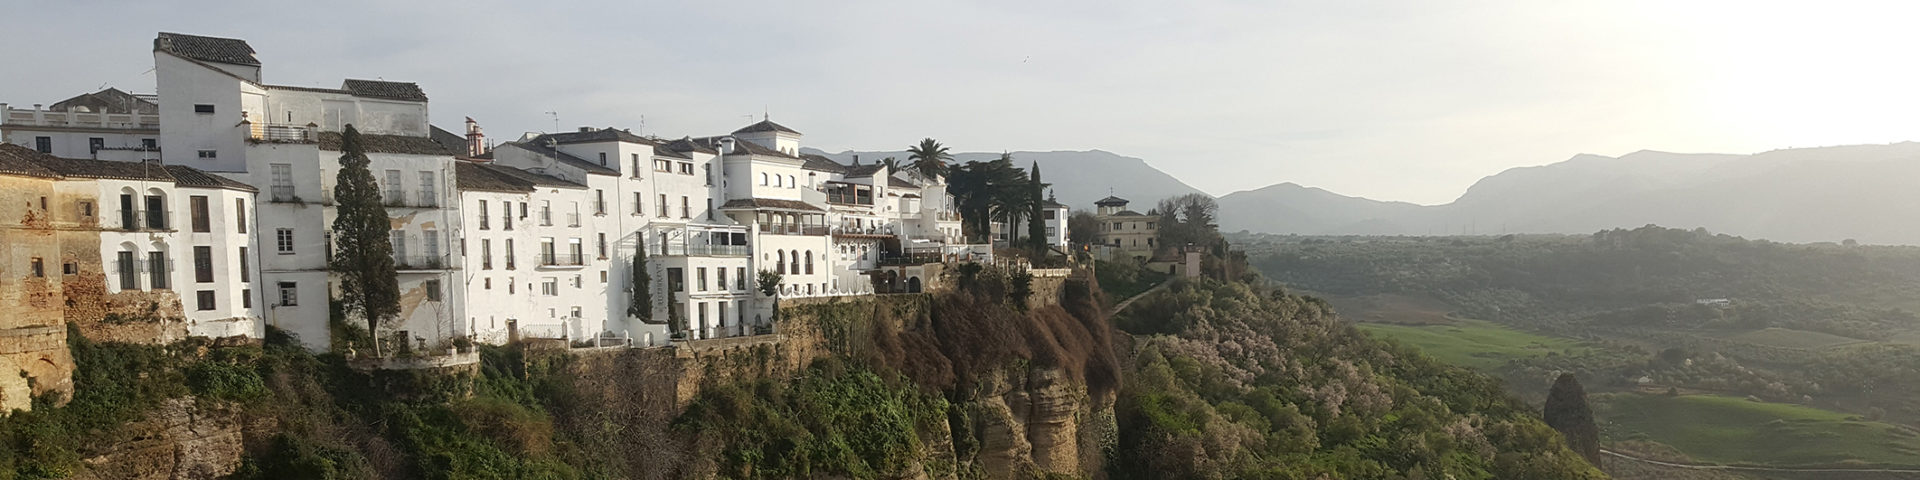 How to Get to Ronda & More Questions about Ronda City in Spain - We